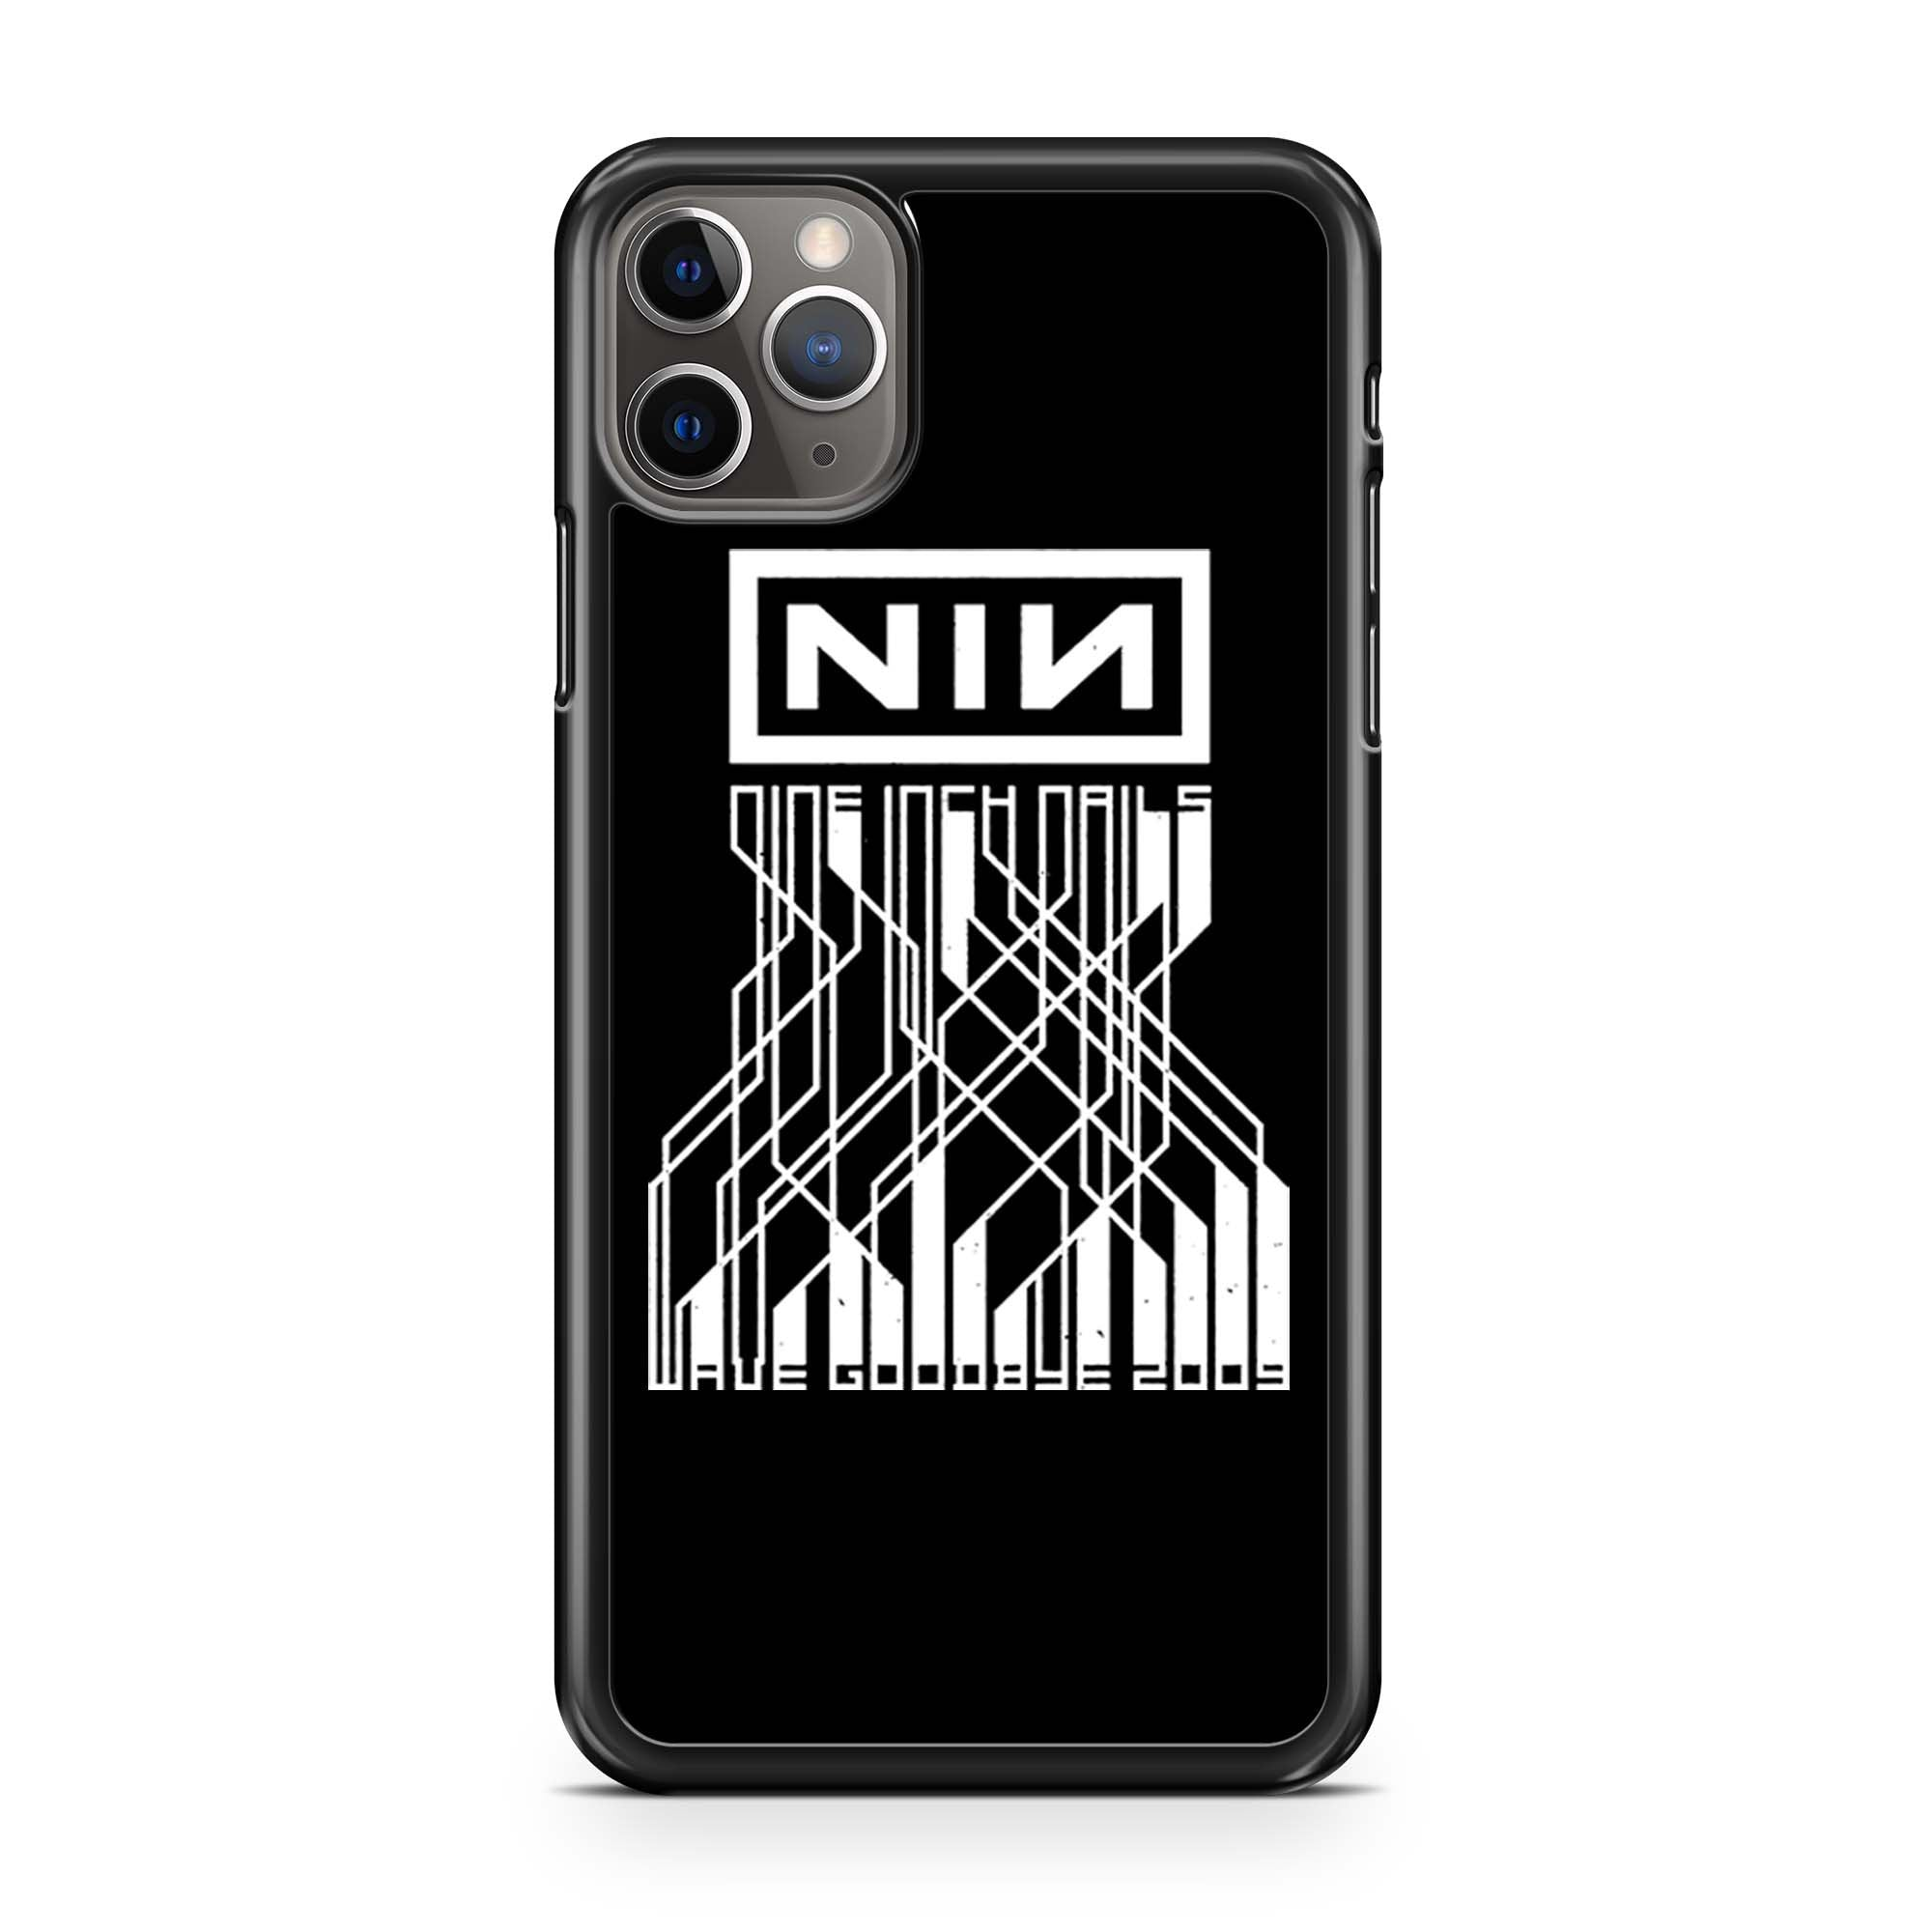 Nin Nine Inch Nails Wave Goodbye 2009 iPhone 11 Pro Max Case